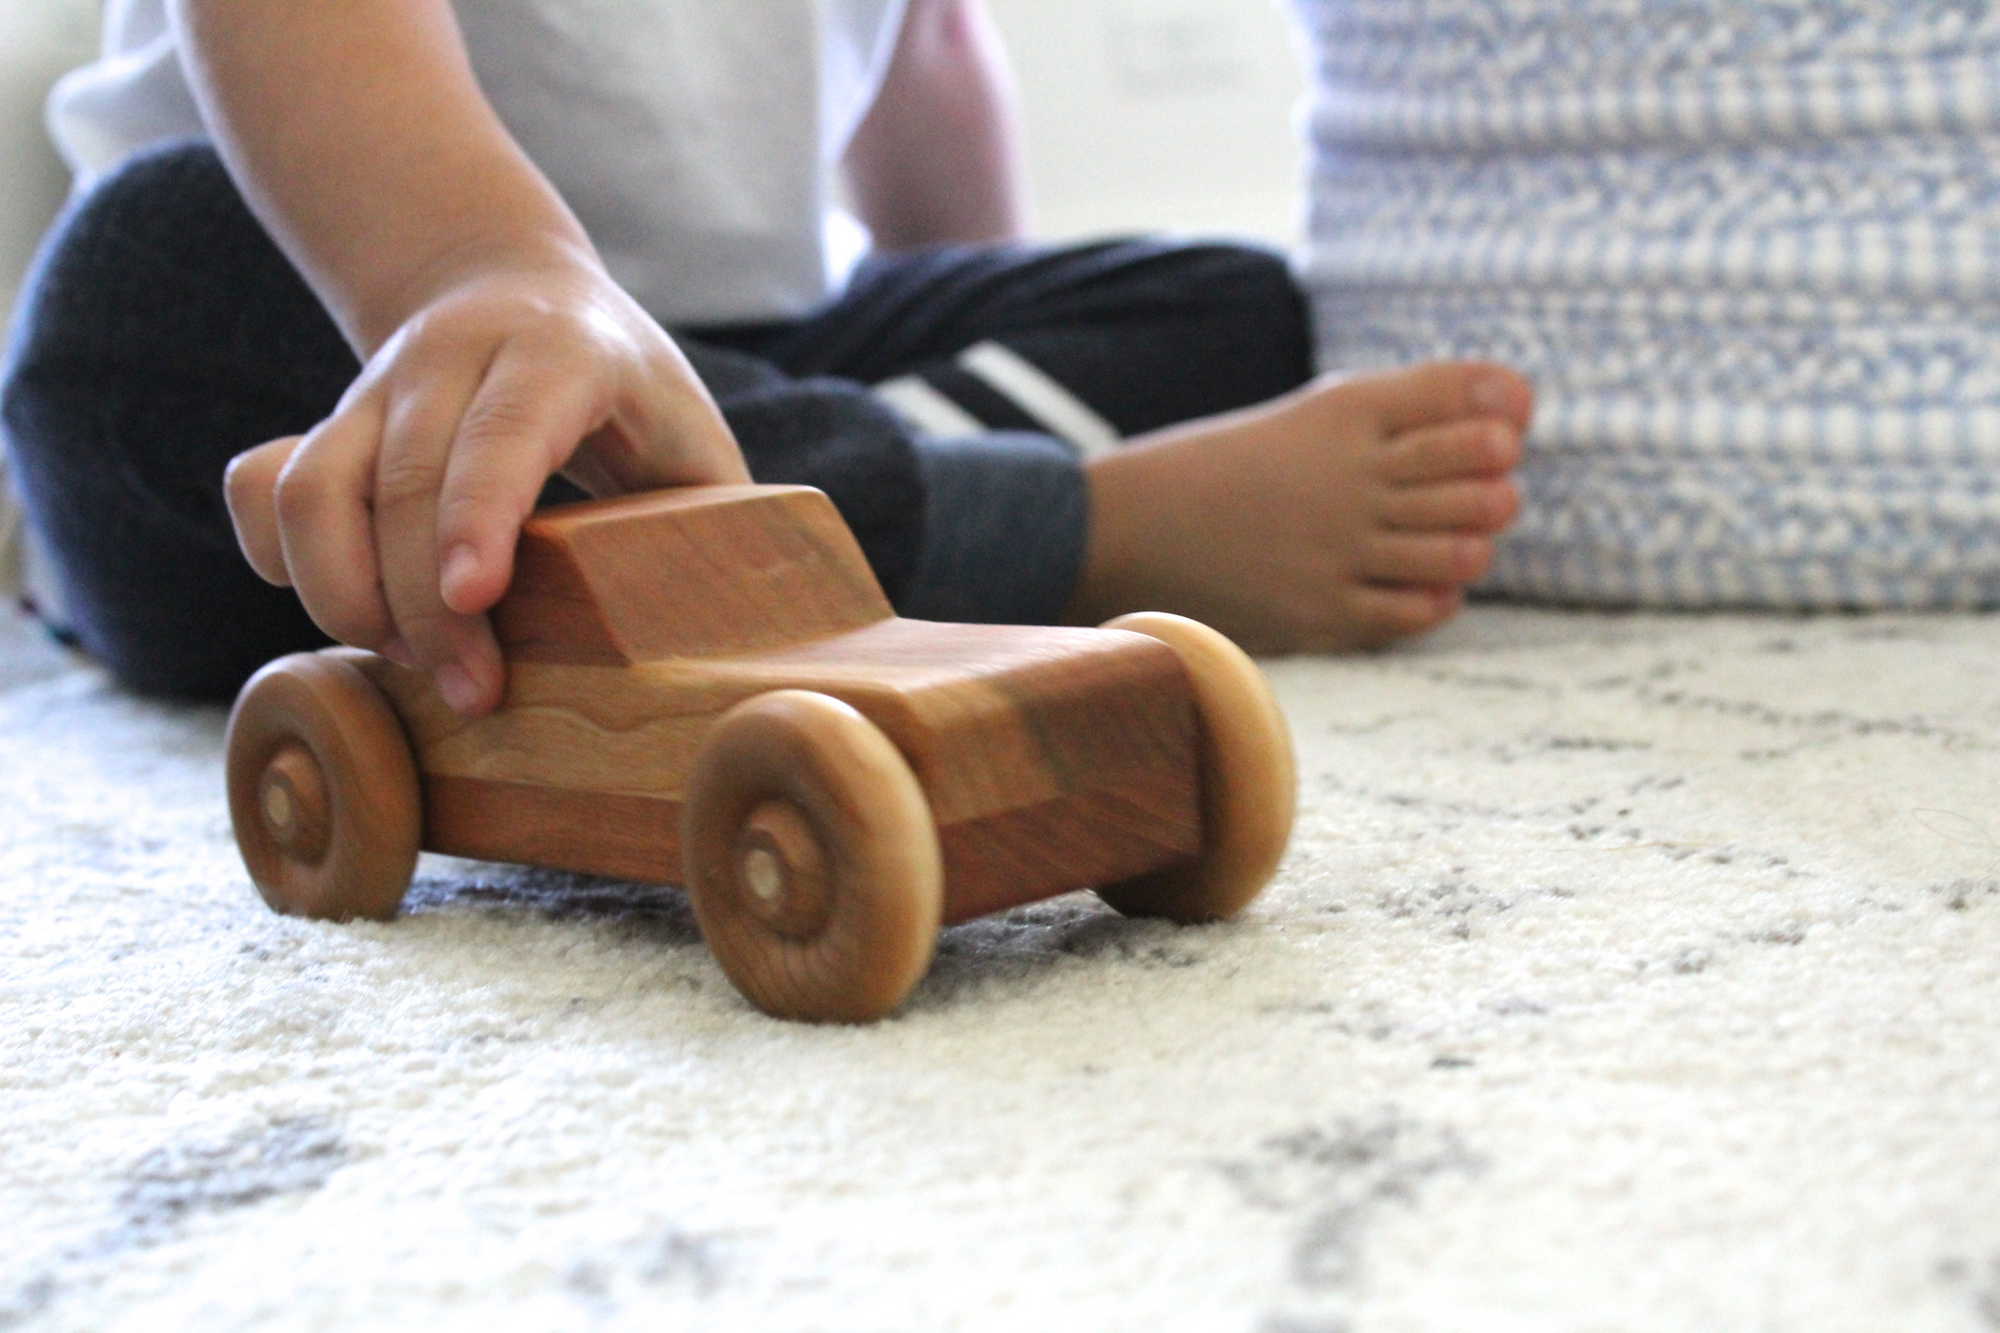 A little boy playing with an heirloom cherry wooden car on the floor.